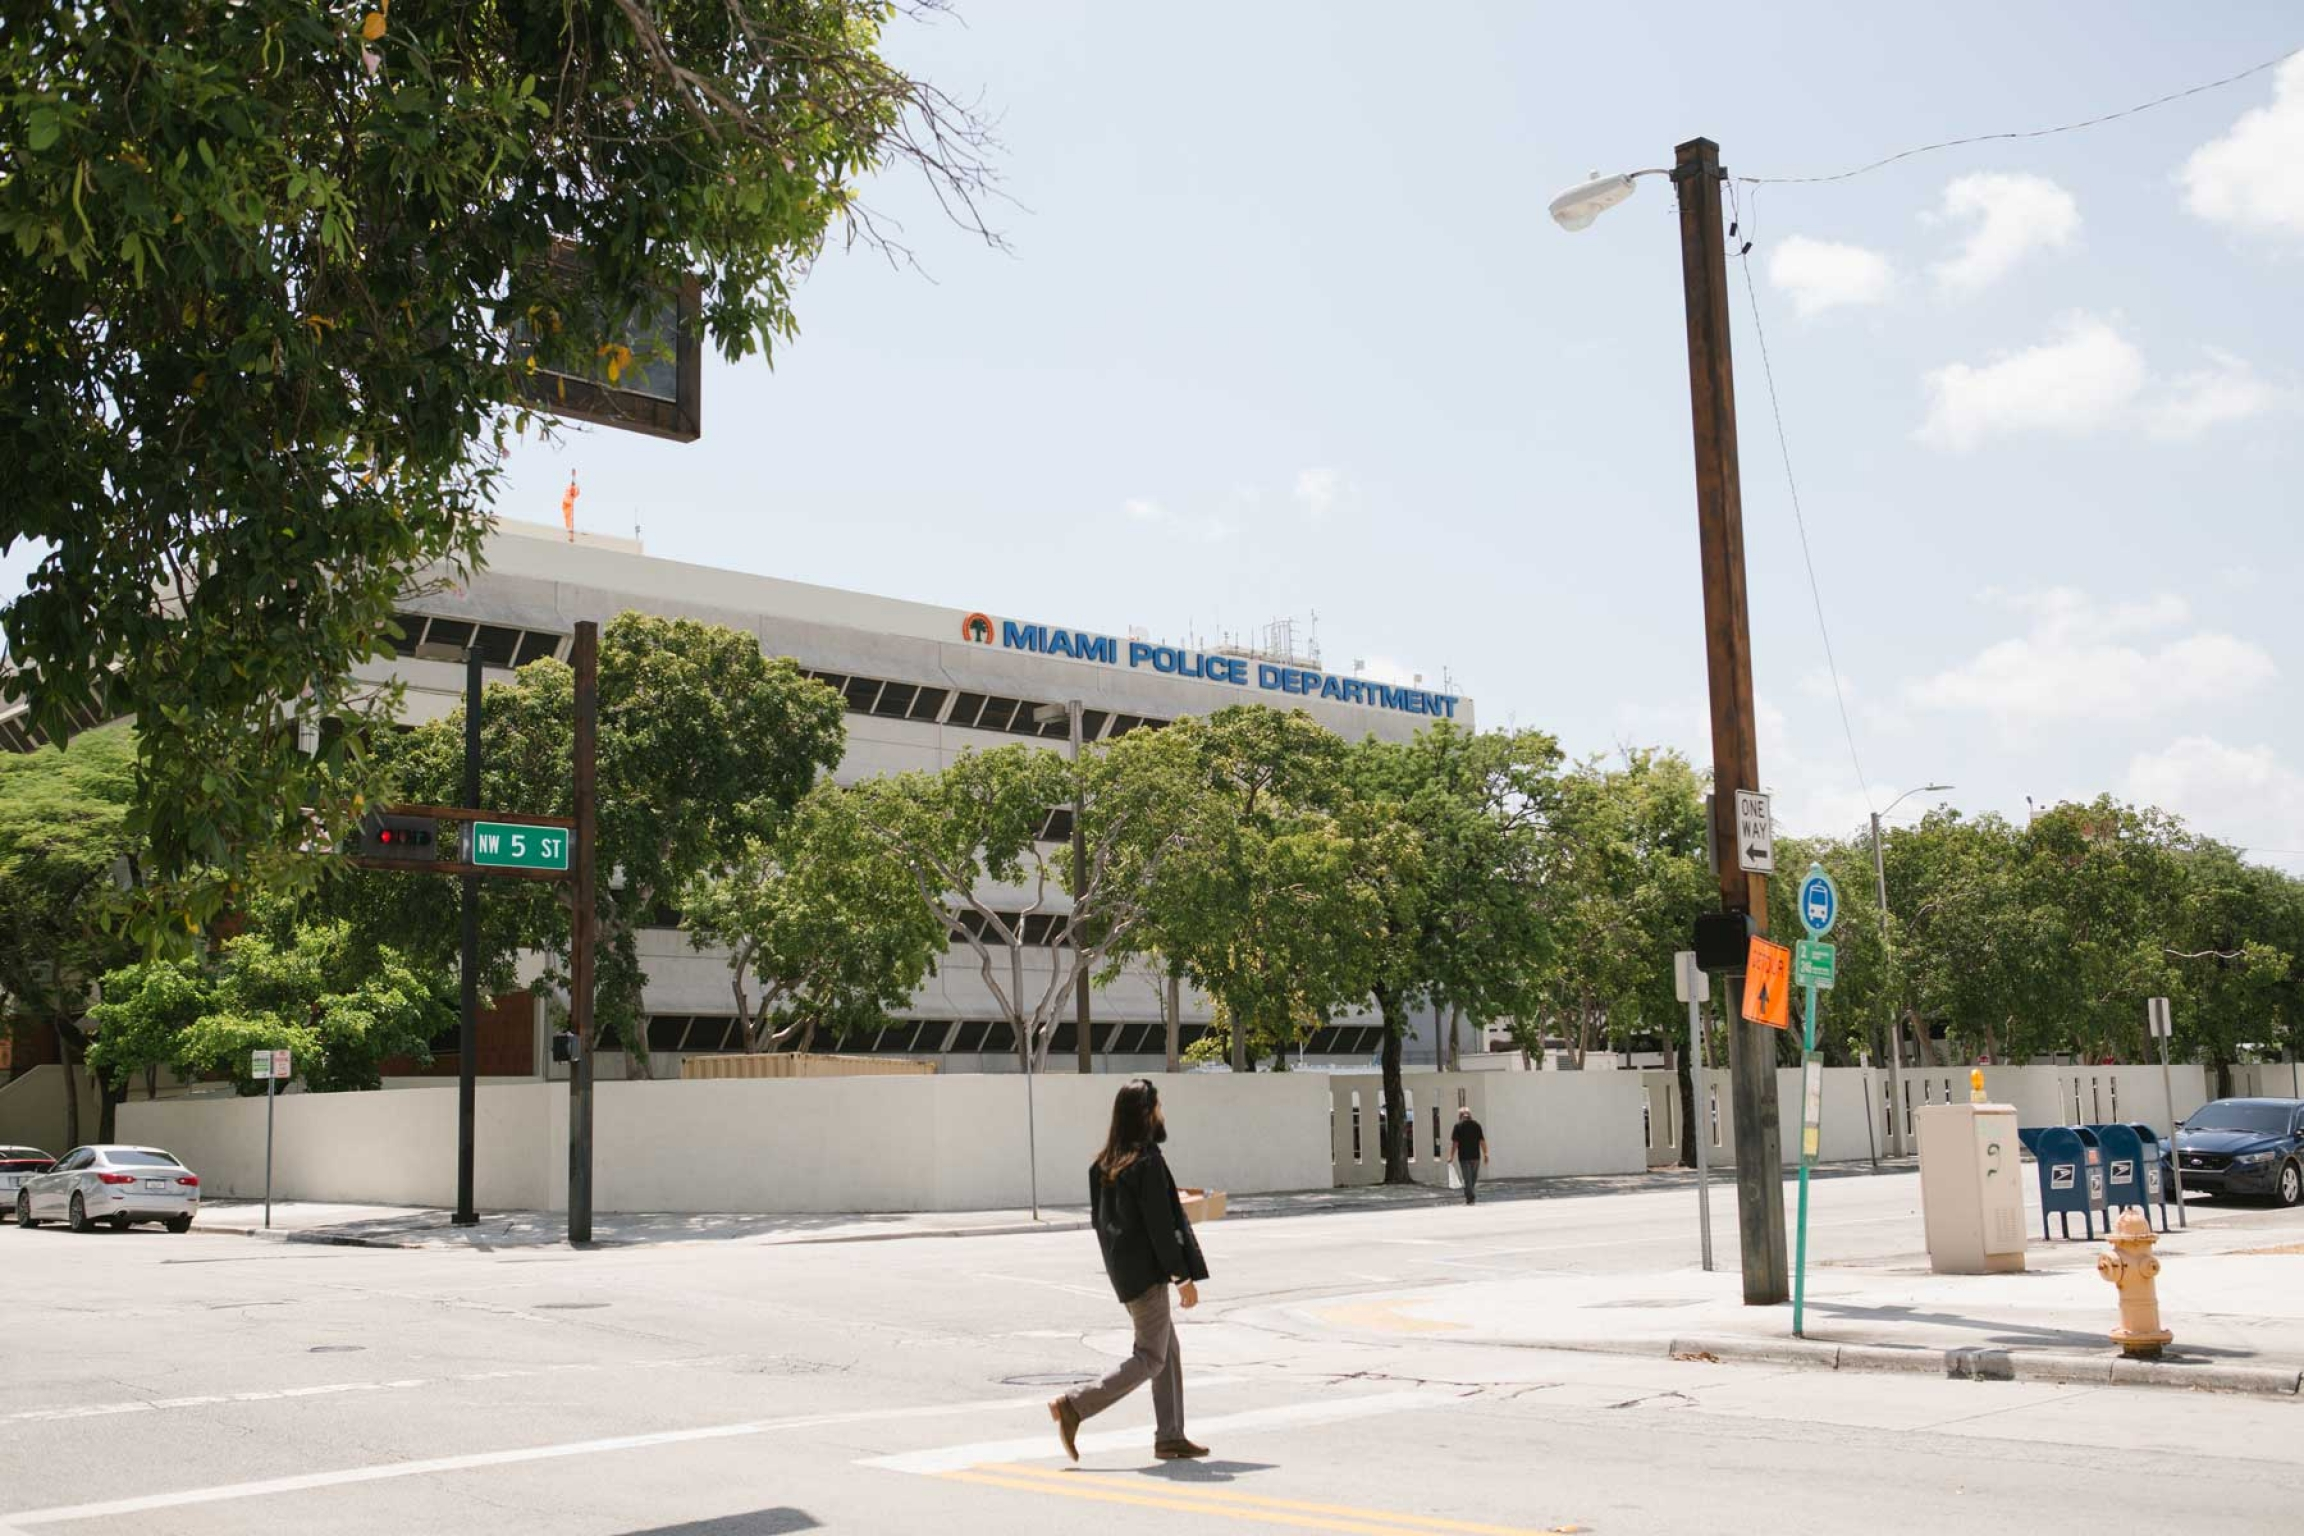 The Miami Police Department approved only 27 of the 235 U visa certification requests it received in the last three years.